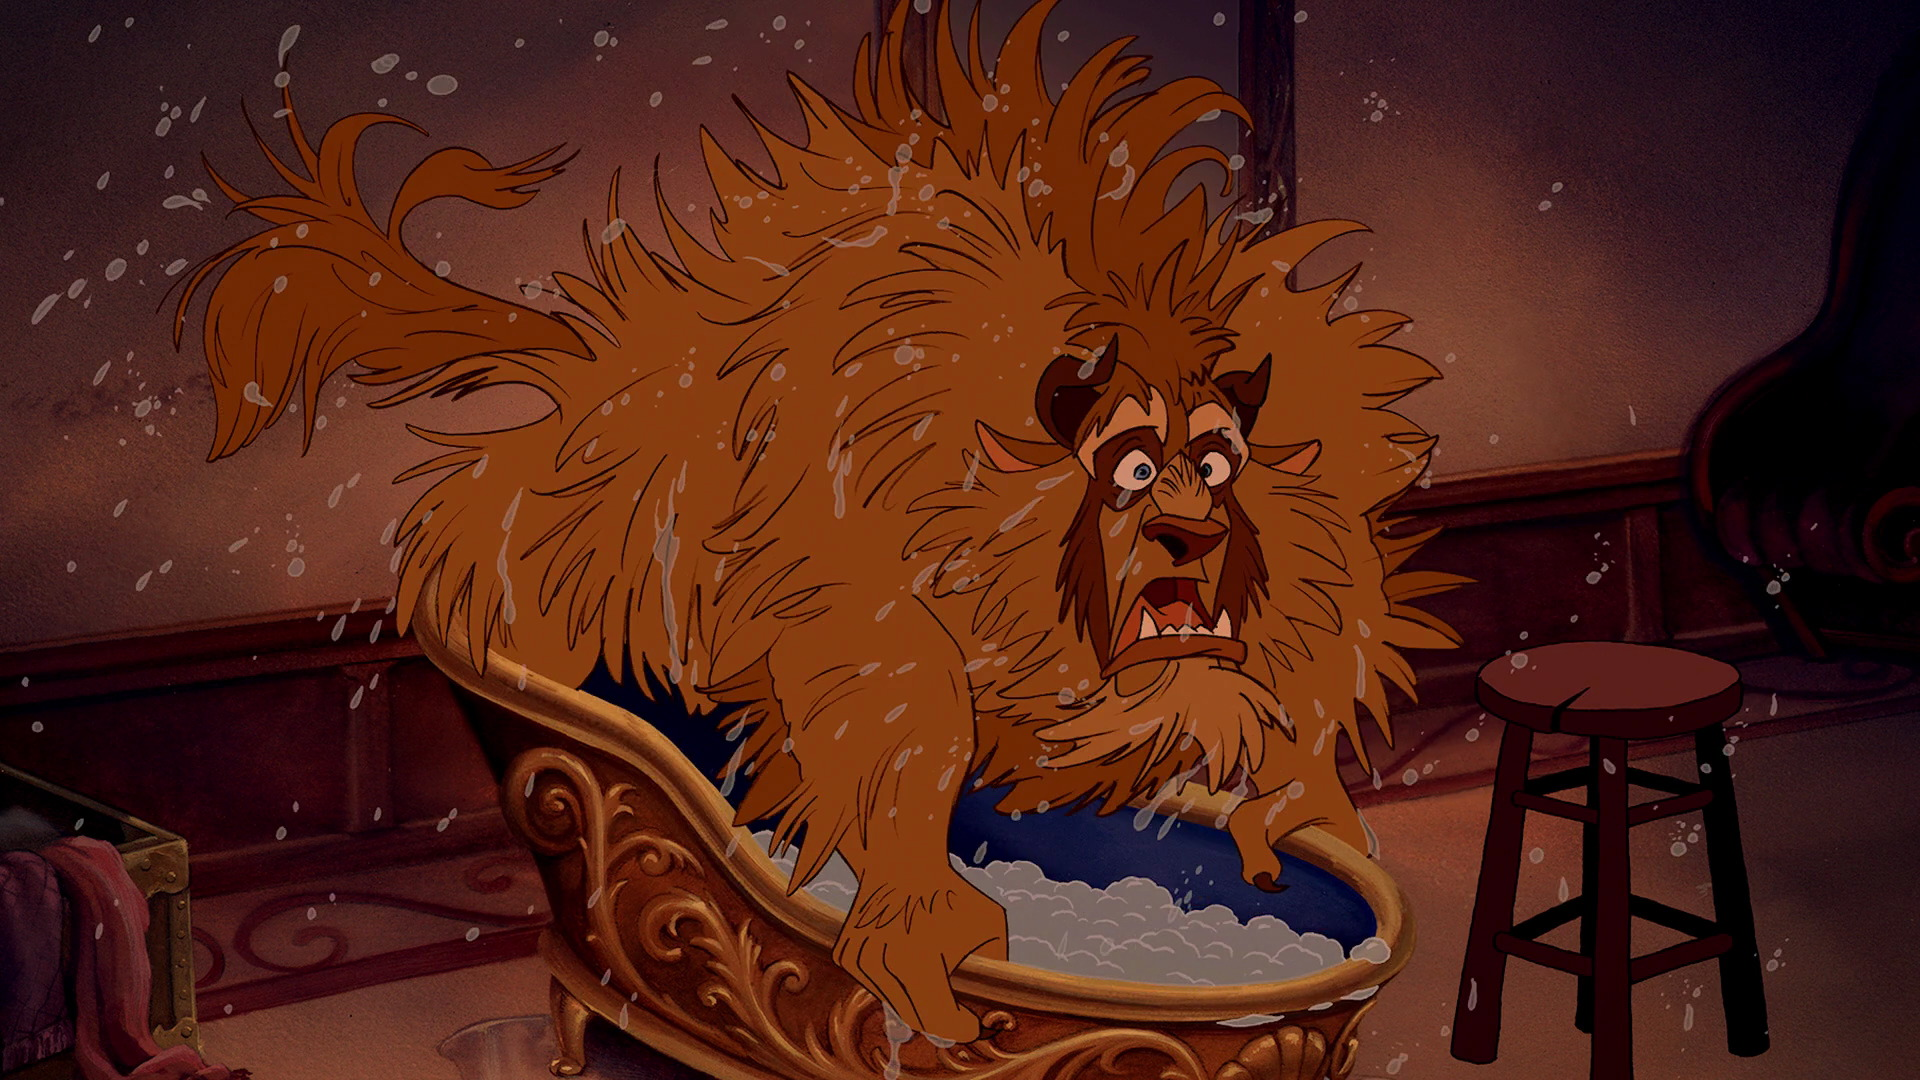 beauty-and-the-beast-disneyscreencaps.com-7152.jpg